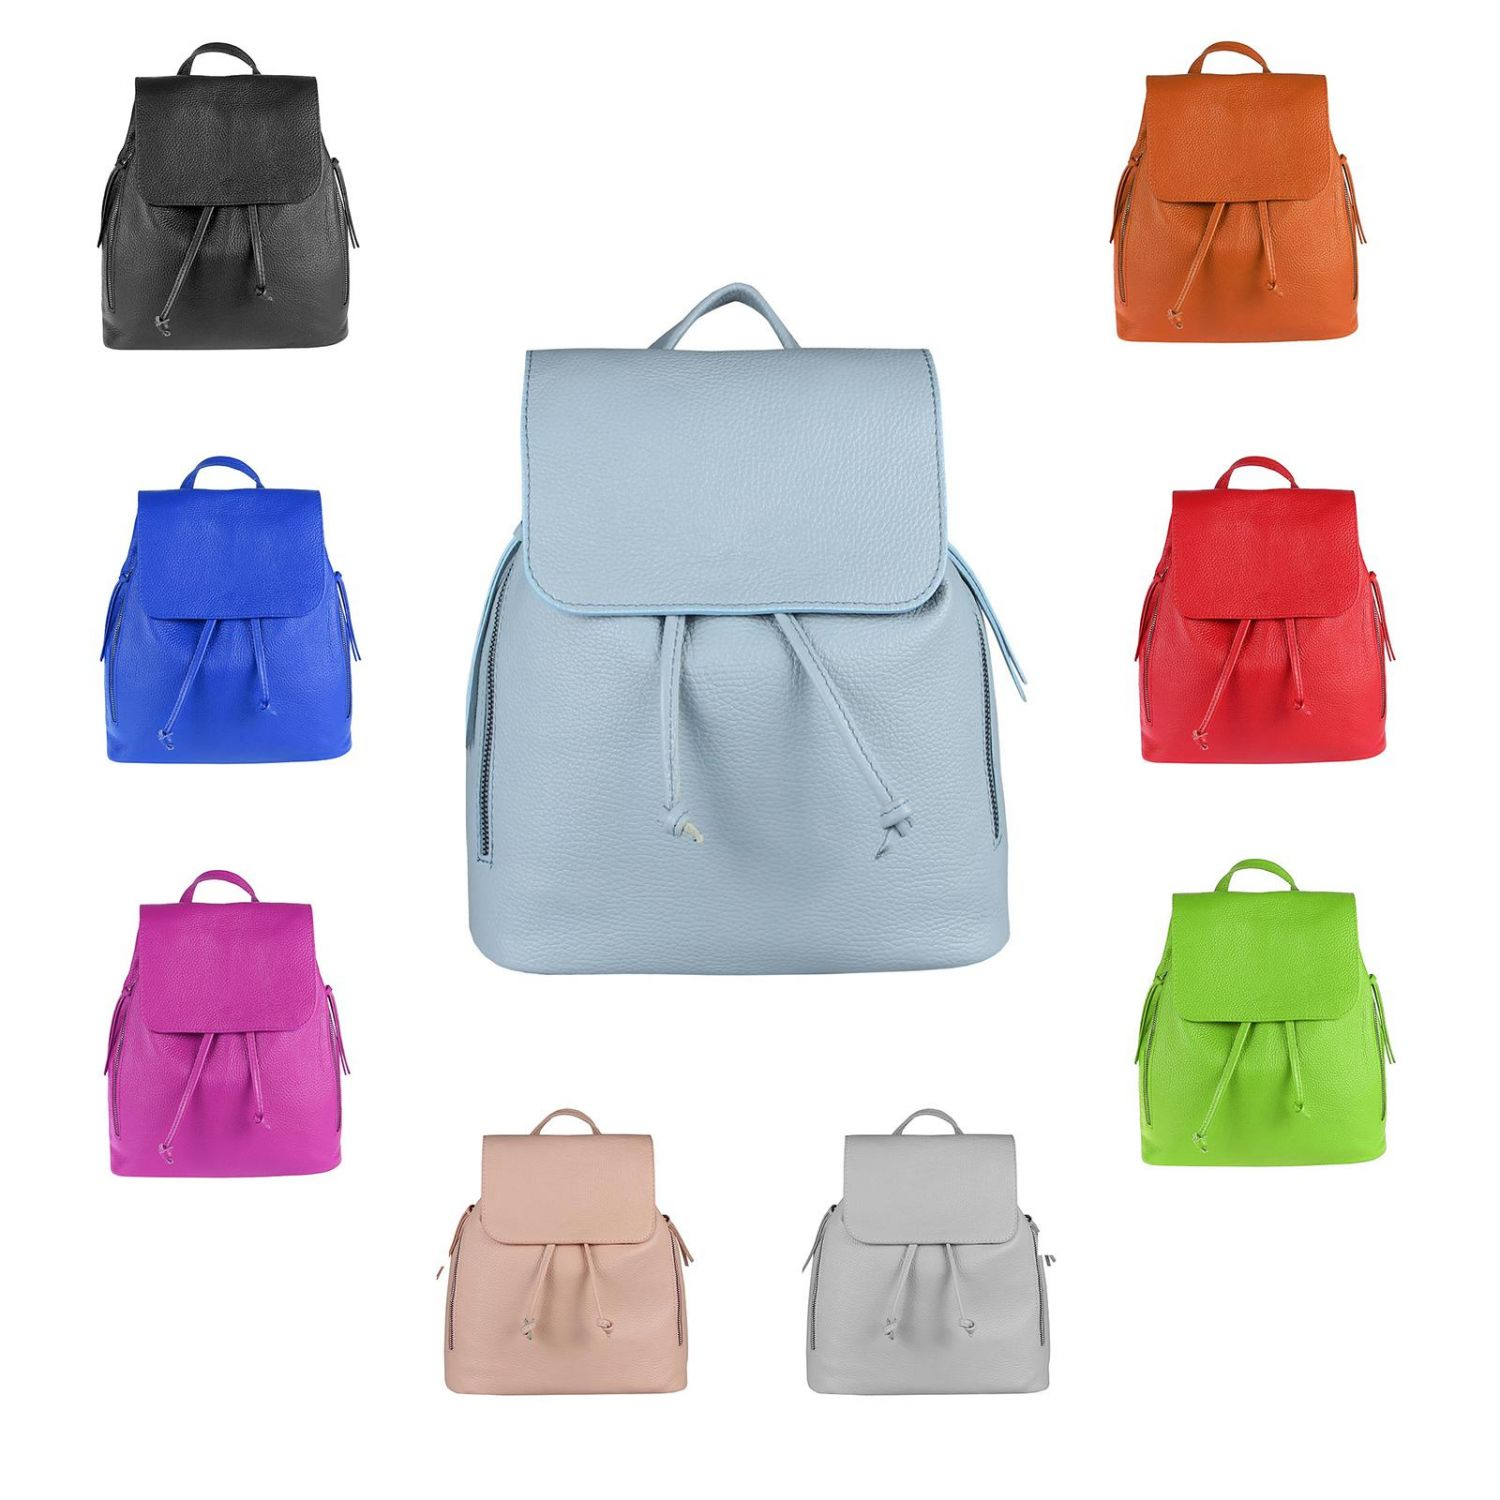 7e71efdedf Details about Italian Women s Real Leather Backpack City Shoulderbag  Daypack Bag